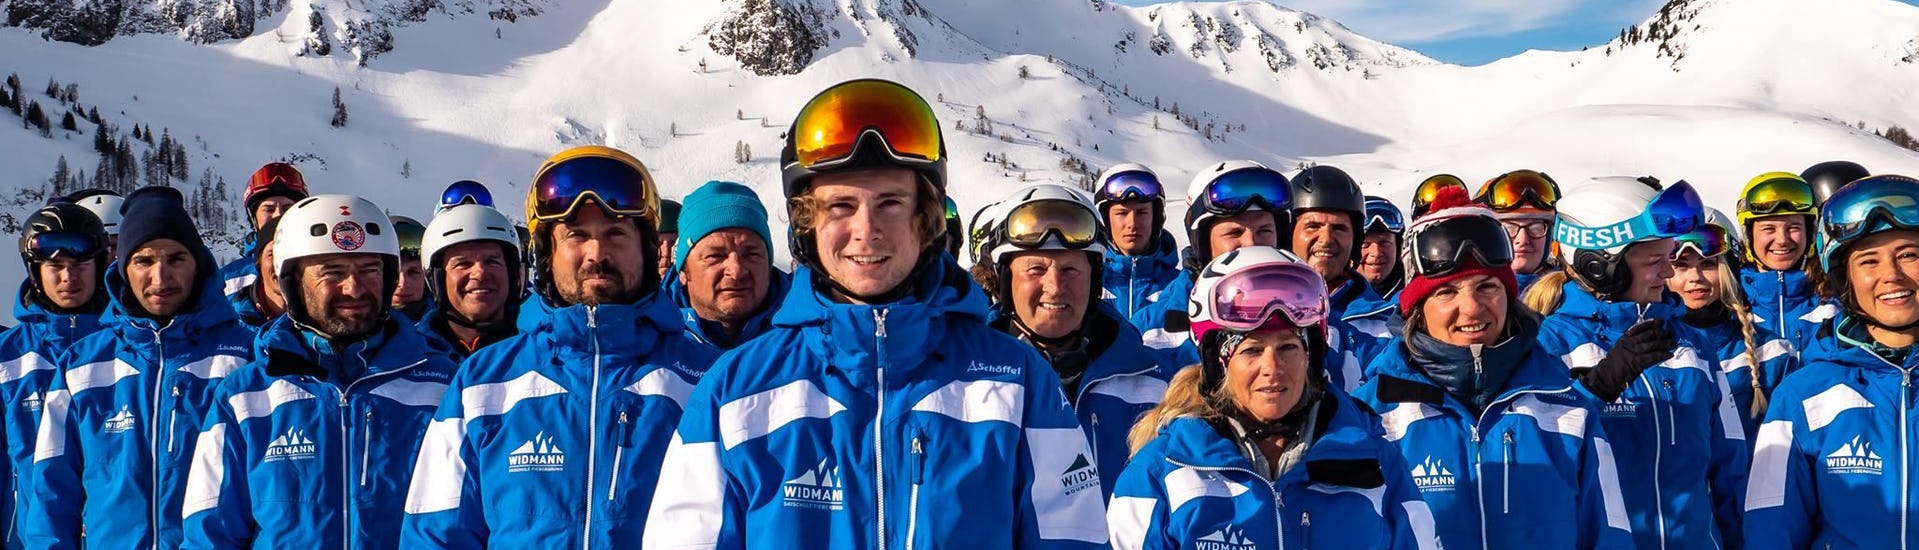 The ski instructors from the ski school Skischule Fieberbrunn Widmann Mountain Sports who teach Ski Lessons for Adults - Beginner are jointly posing for a group photo.